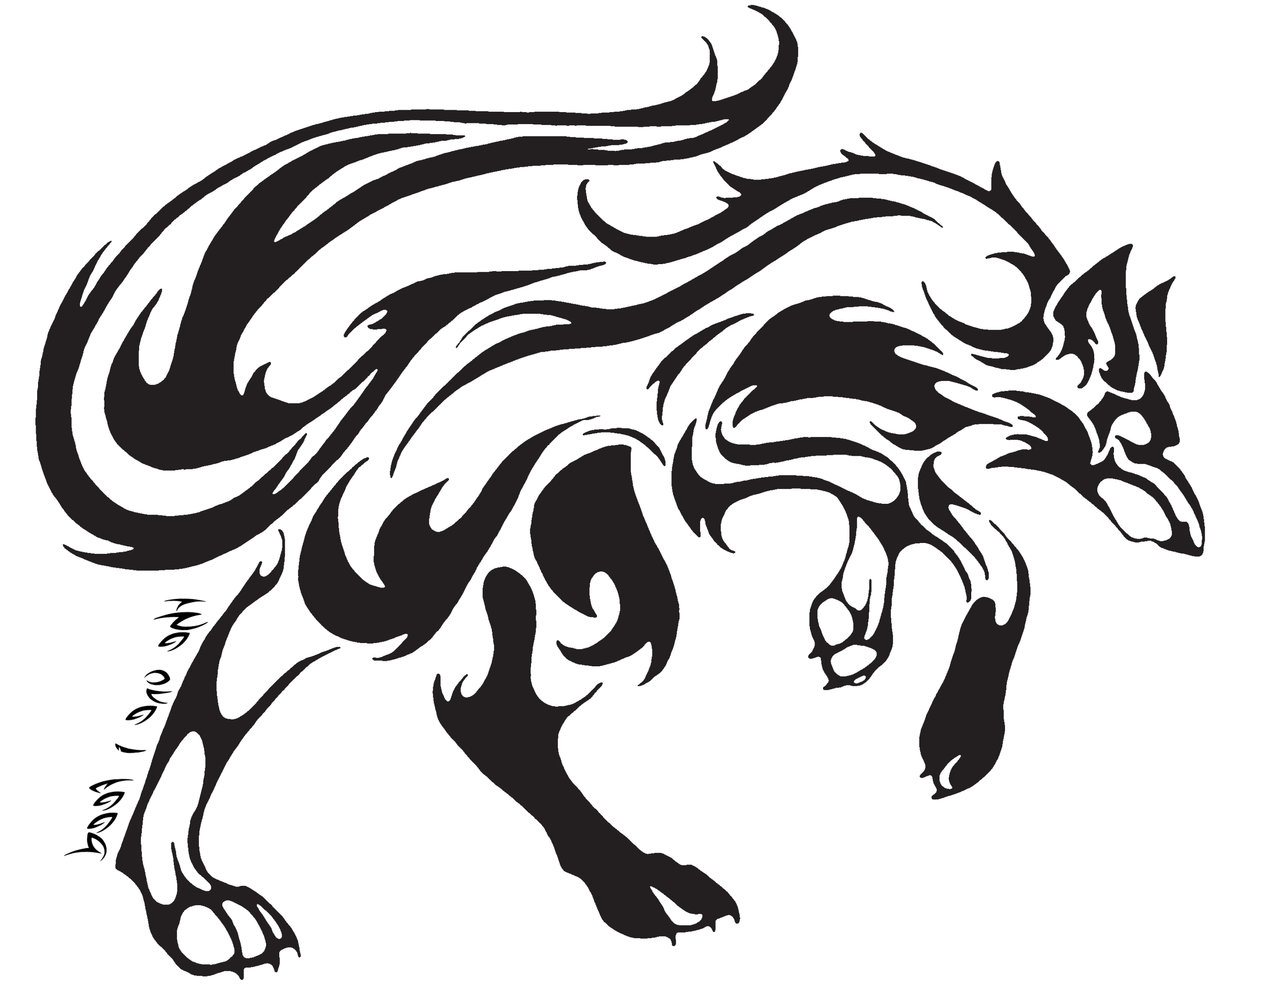 1280x989 Cool Tribal Designs To Draw Cool Tribal Fox Designs To Draw